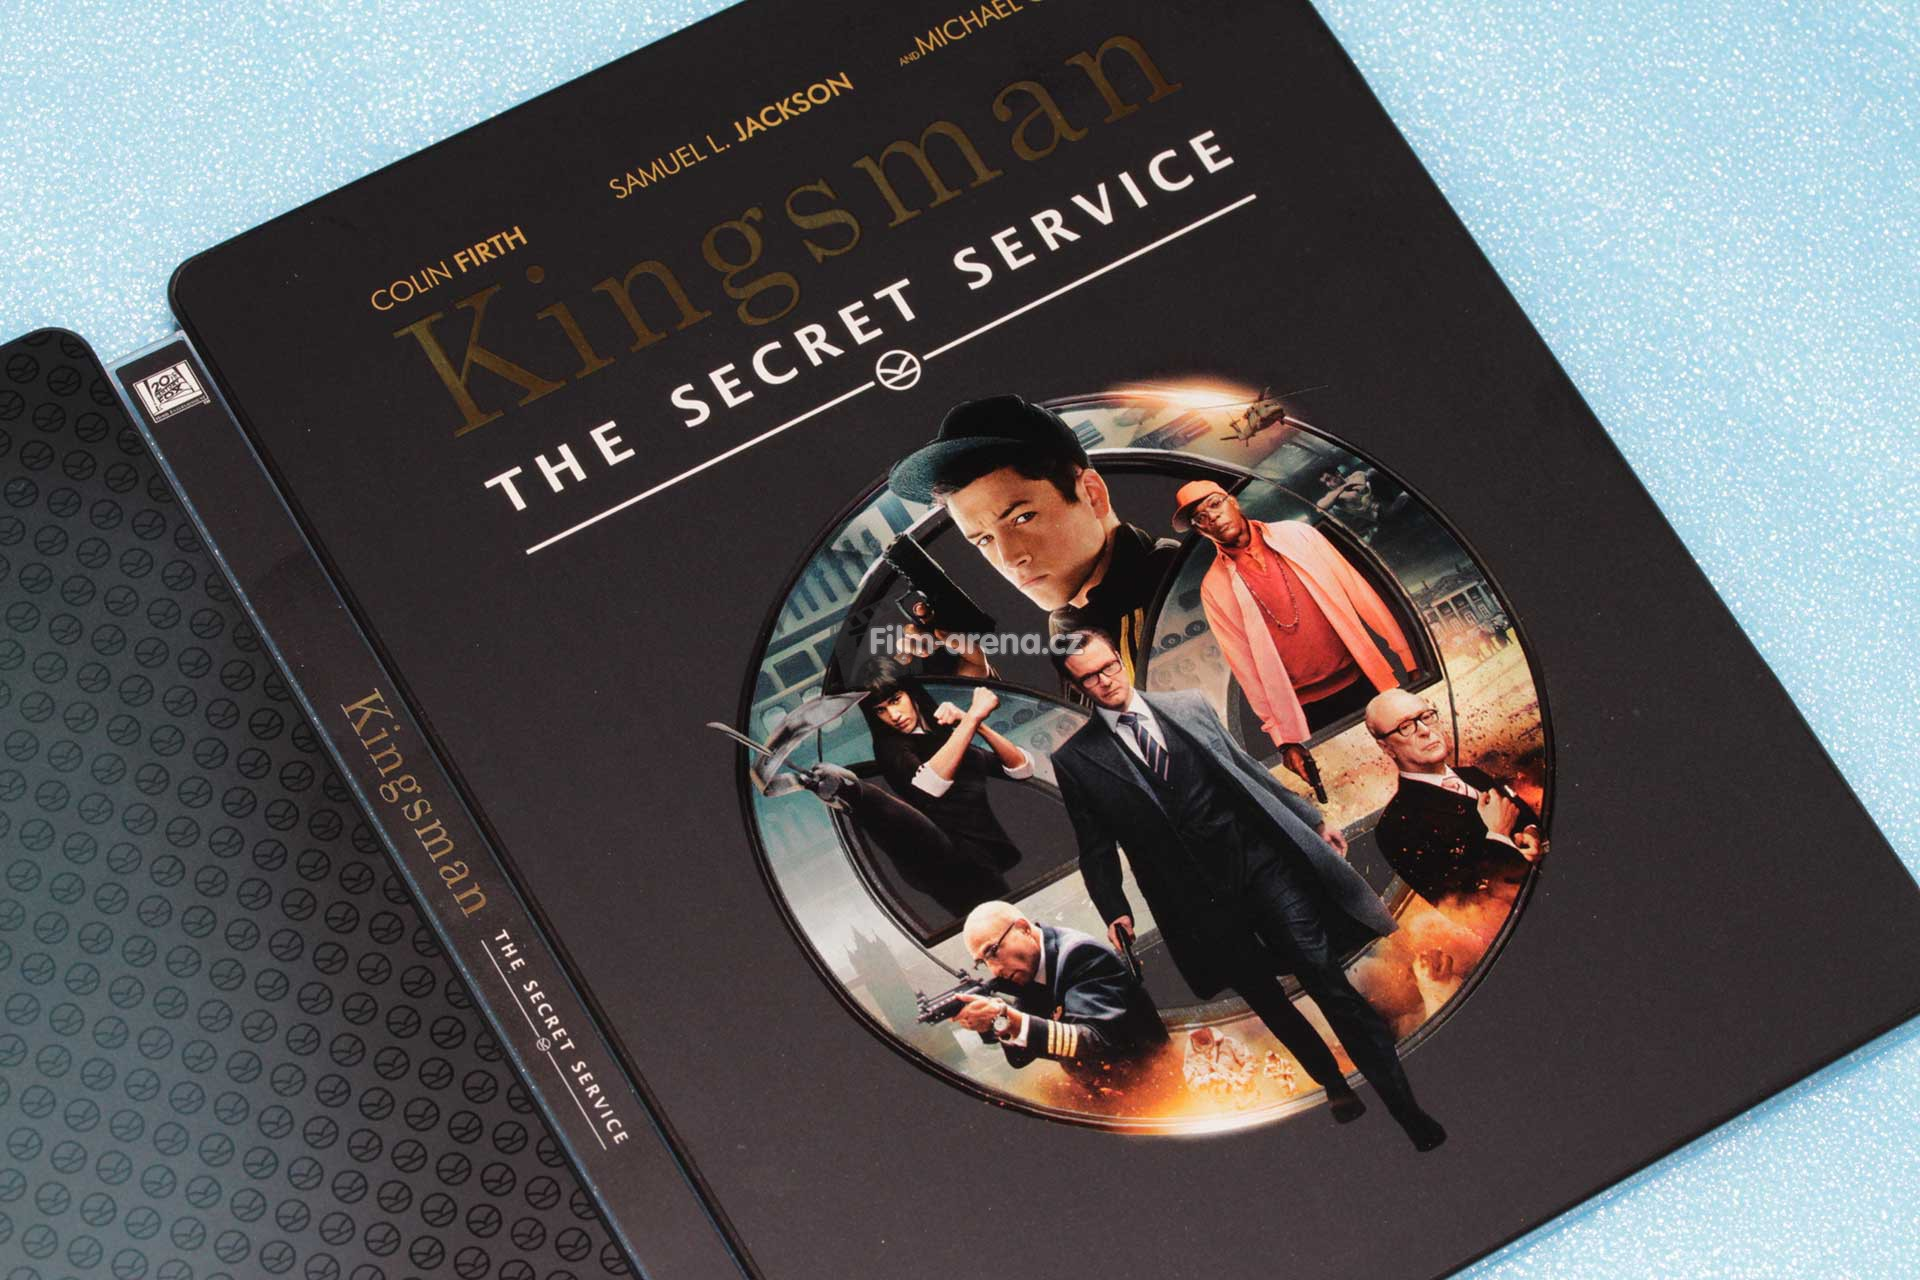 Kingsman the secret service blu ray steelbook filmarena collection